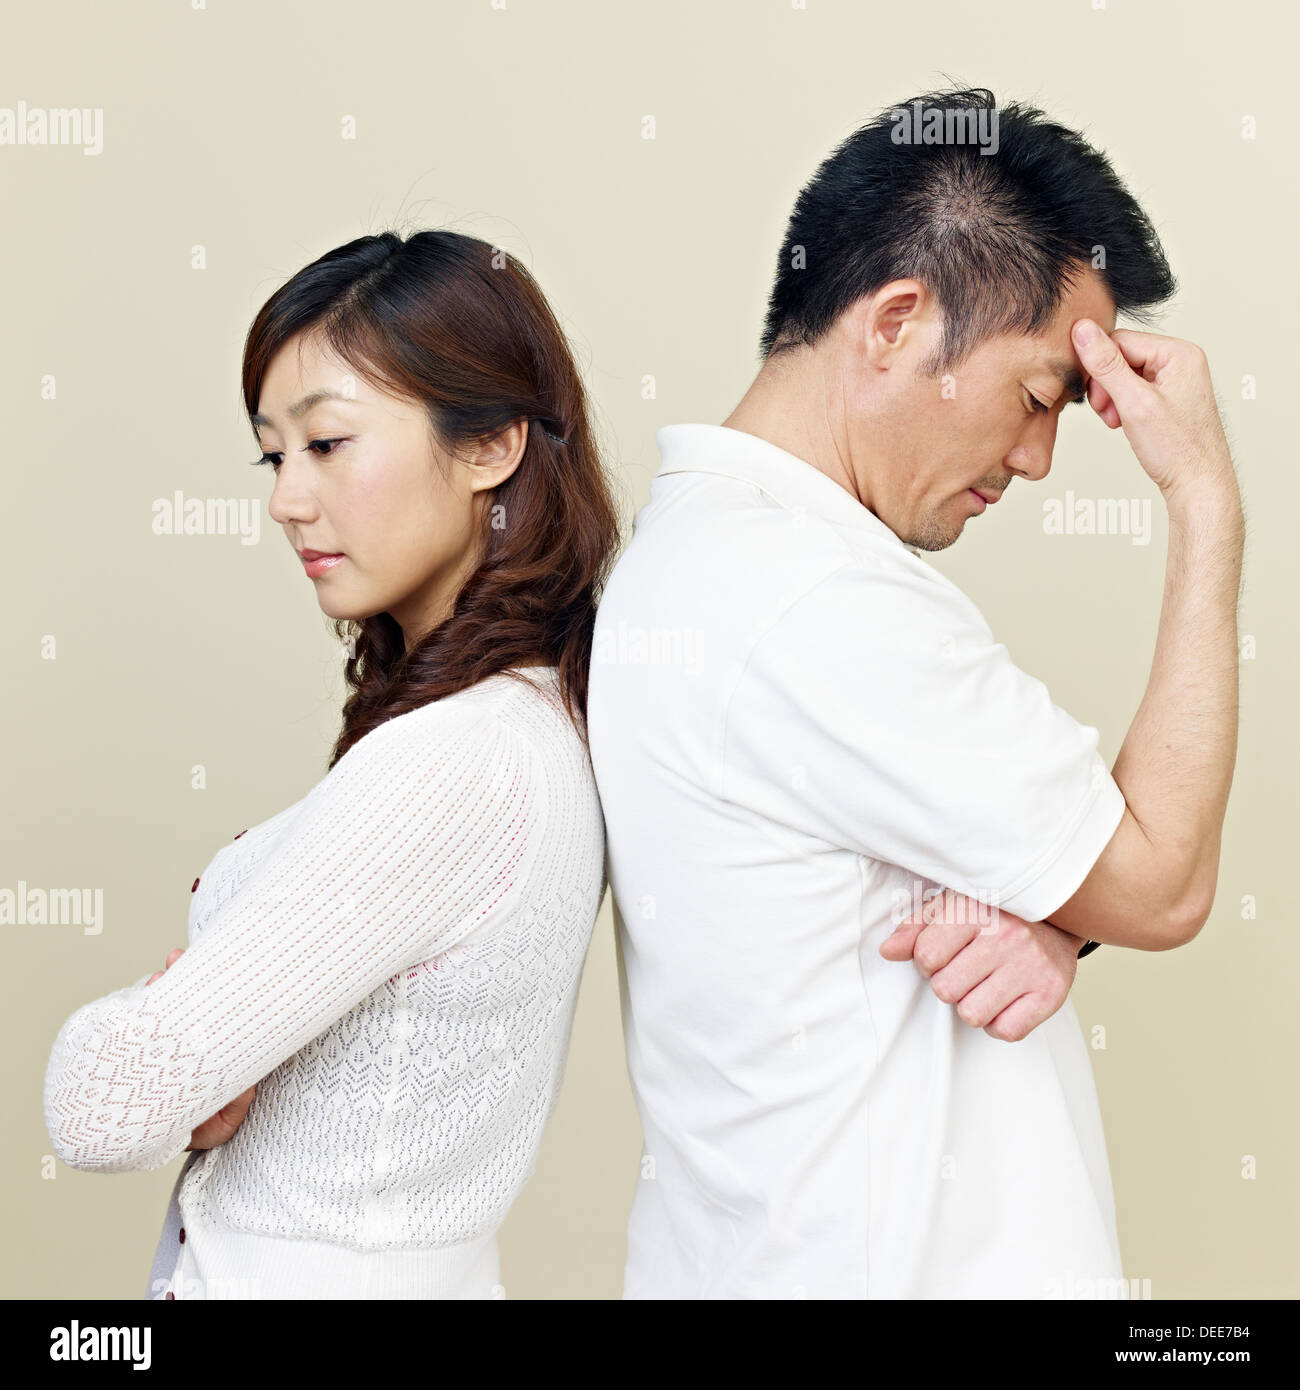 Young Asian Couple - Stock Image